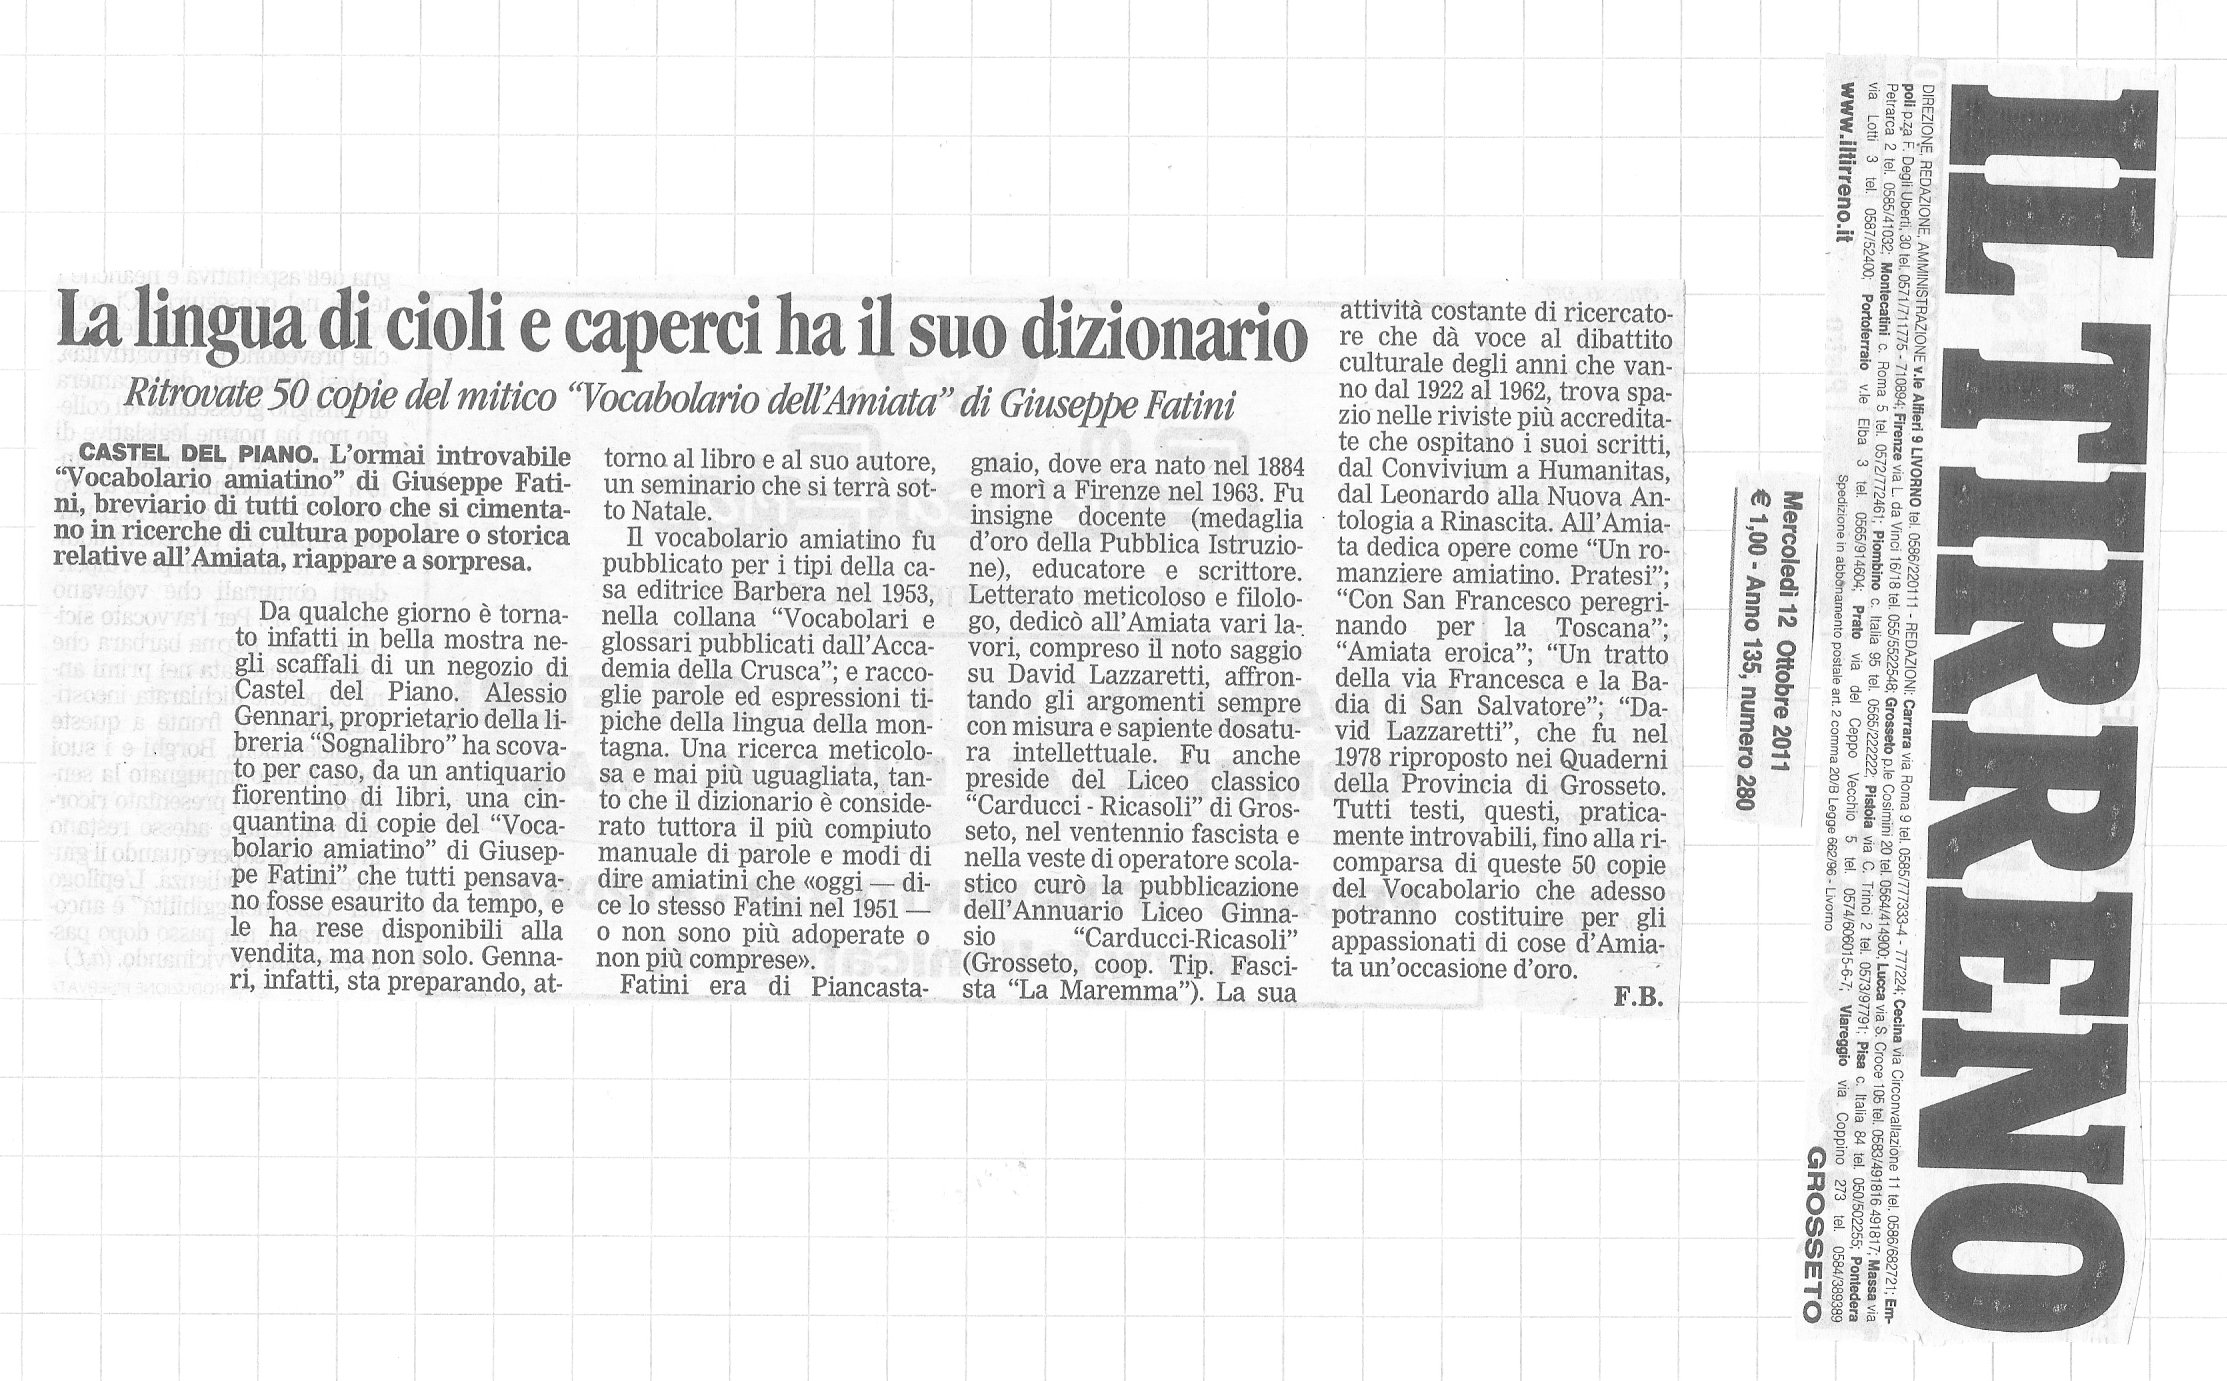 12-vocabolario-amiatino-1-it-12-ottobre-2011